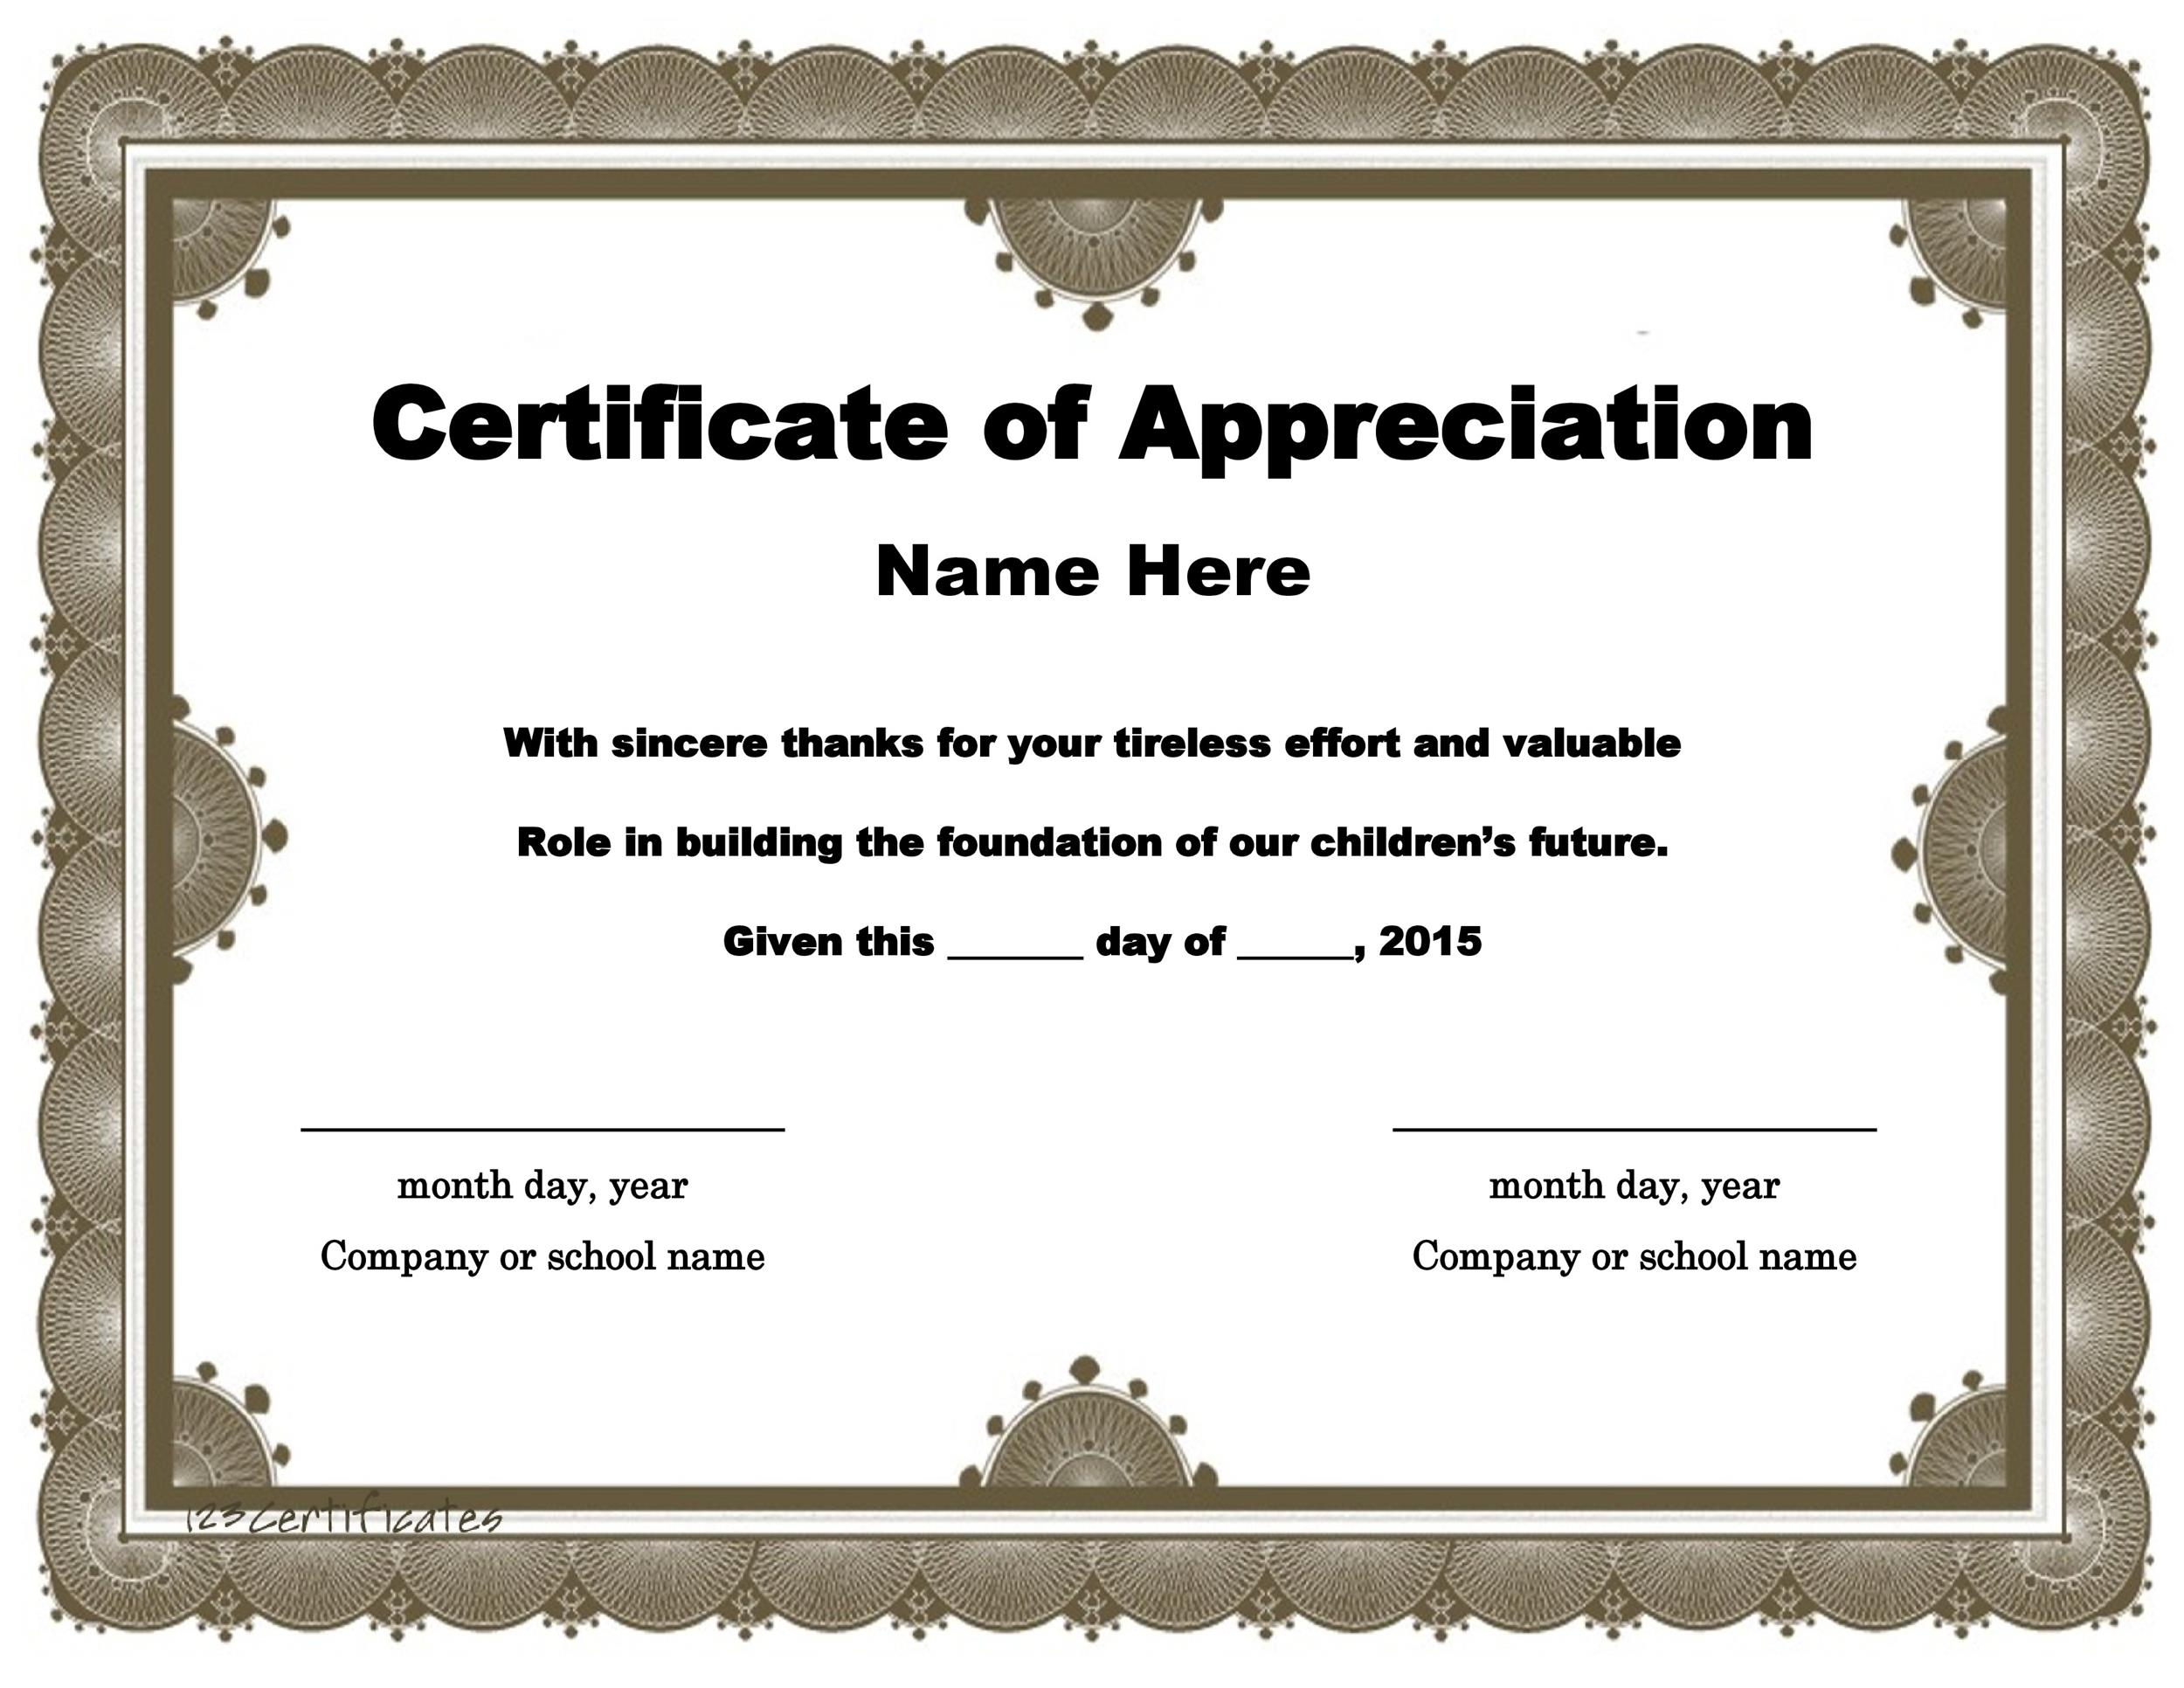 30 Free Certificate of Appreciation Templates and Letters - certificate of excellence template word